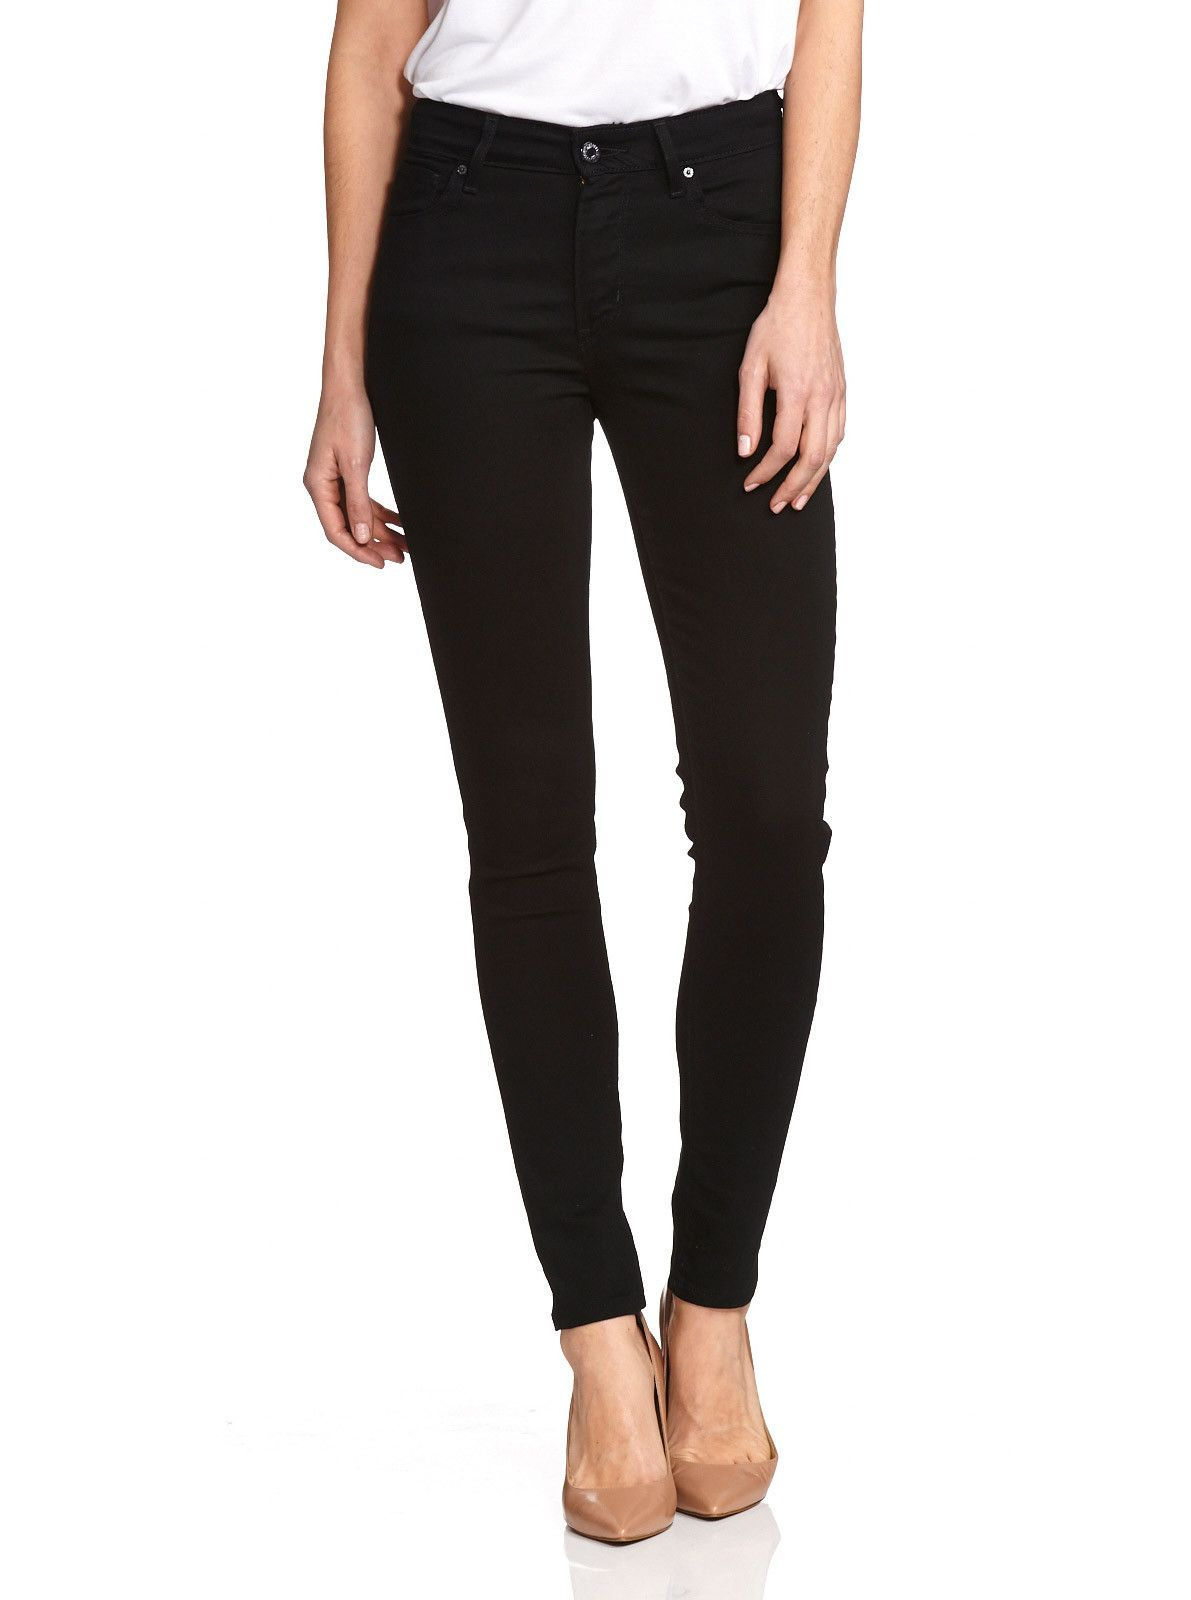 bc12cd90 Levi's 721 High Rise Skinny Fit. Innovative stretch denim designed to  flatter, hold and lift. Slim through the hip and thigh with a skinny leg  and ...